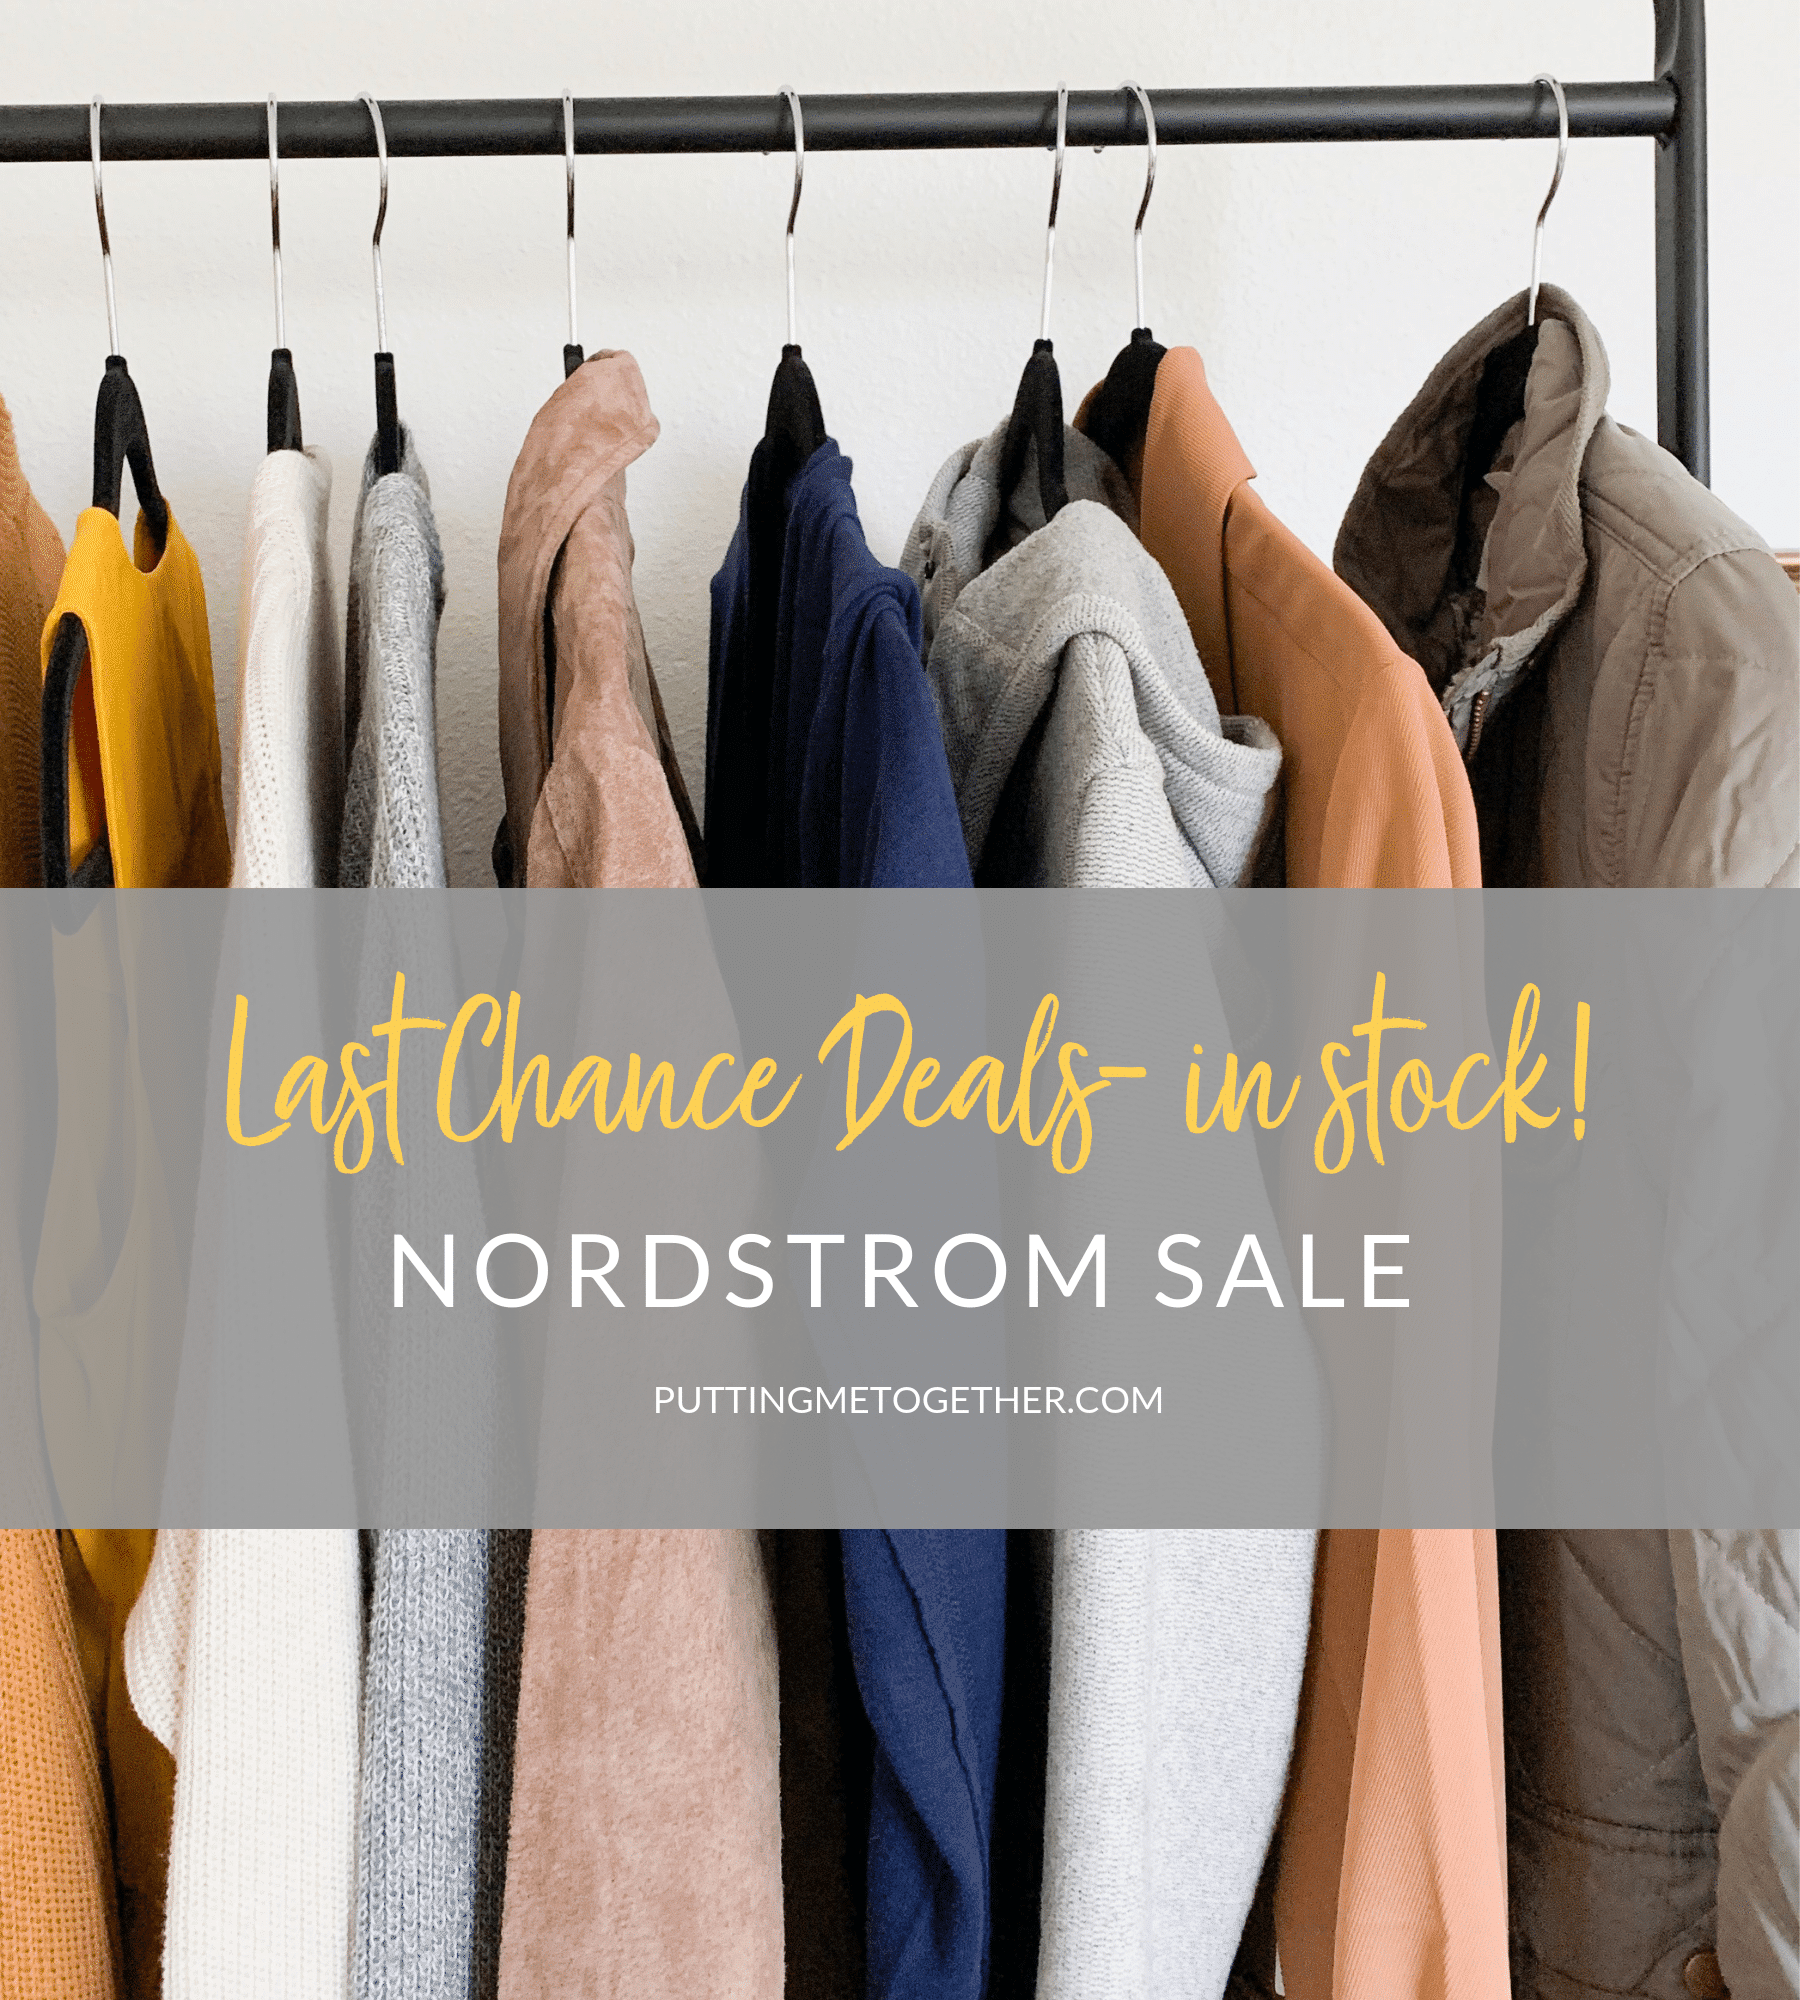 Last Chance Nordstrom Sale Deals In stock